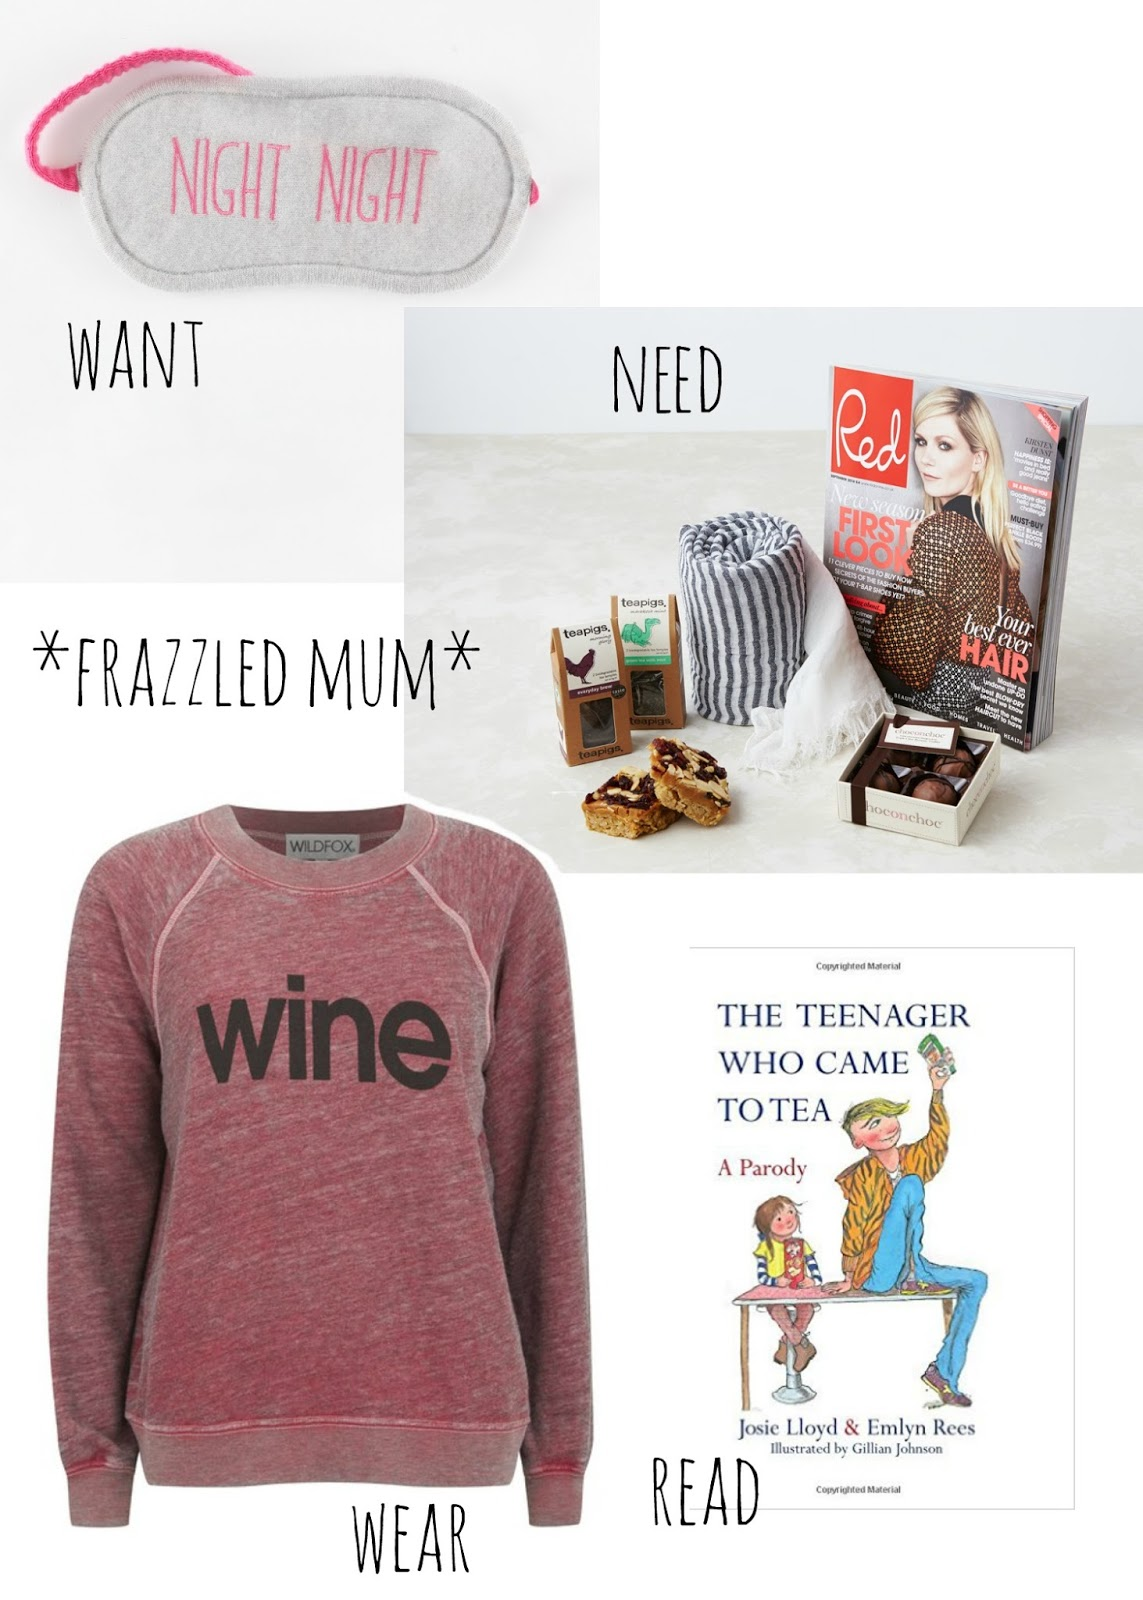 mamasVIB   V. I. BUYS: The simple Christmas gift guide for busy mums under pressure! Part 1 *LADIES FIRST*  gift guide, christmas gift guide, simple gifts, want need, wear read gifts, the gift philosophy, luxury gift ideas, bonita turner, stylist, mamasvib blog, blog, christmas ideas, styling